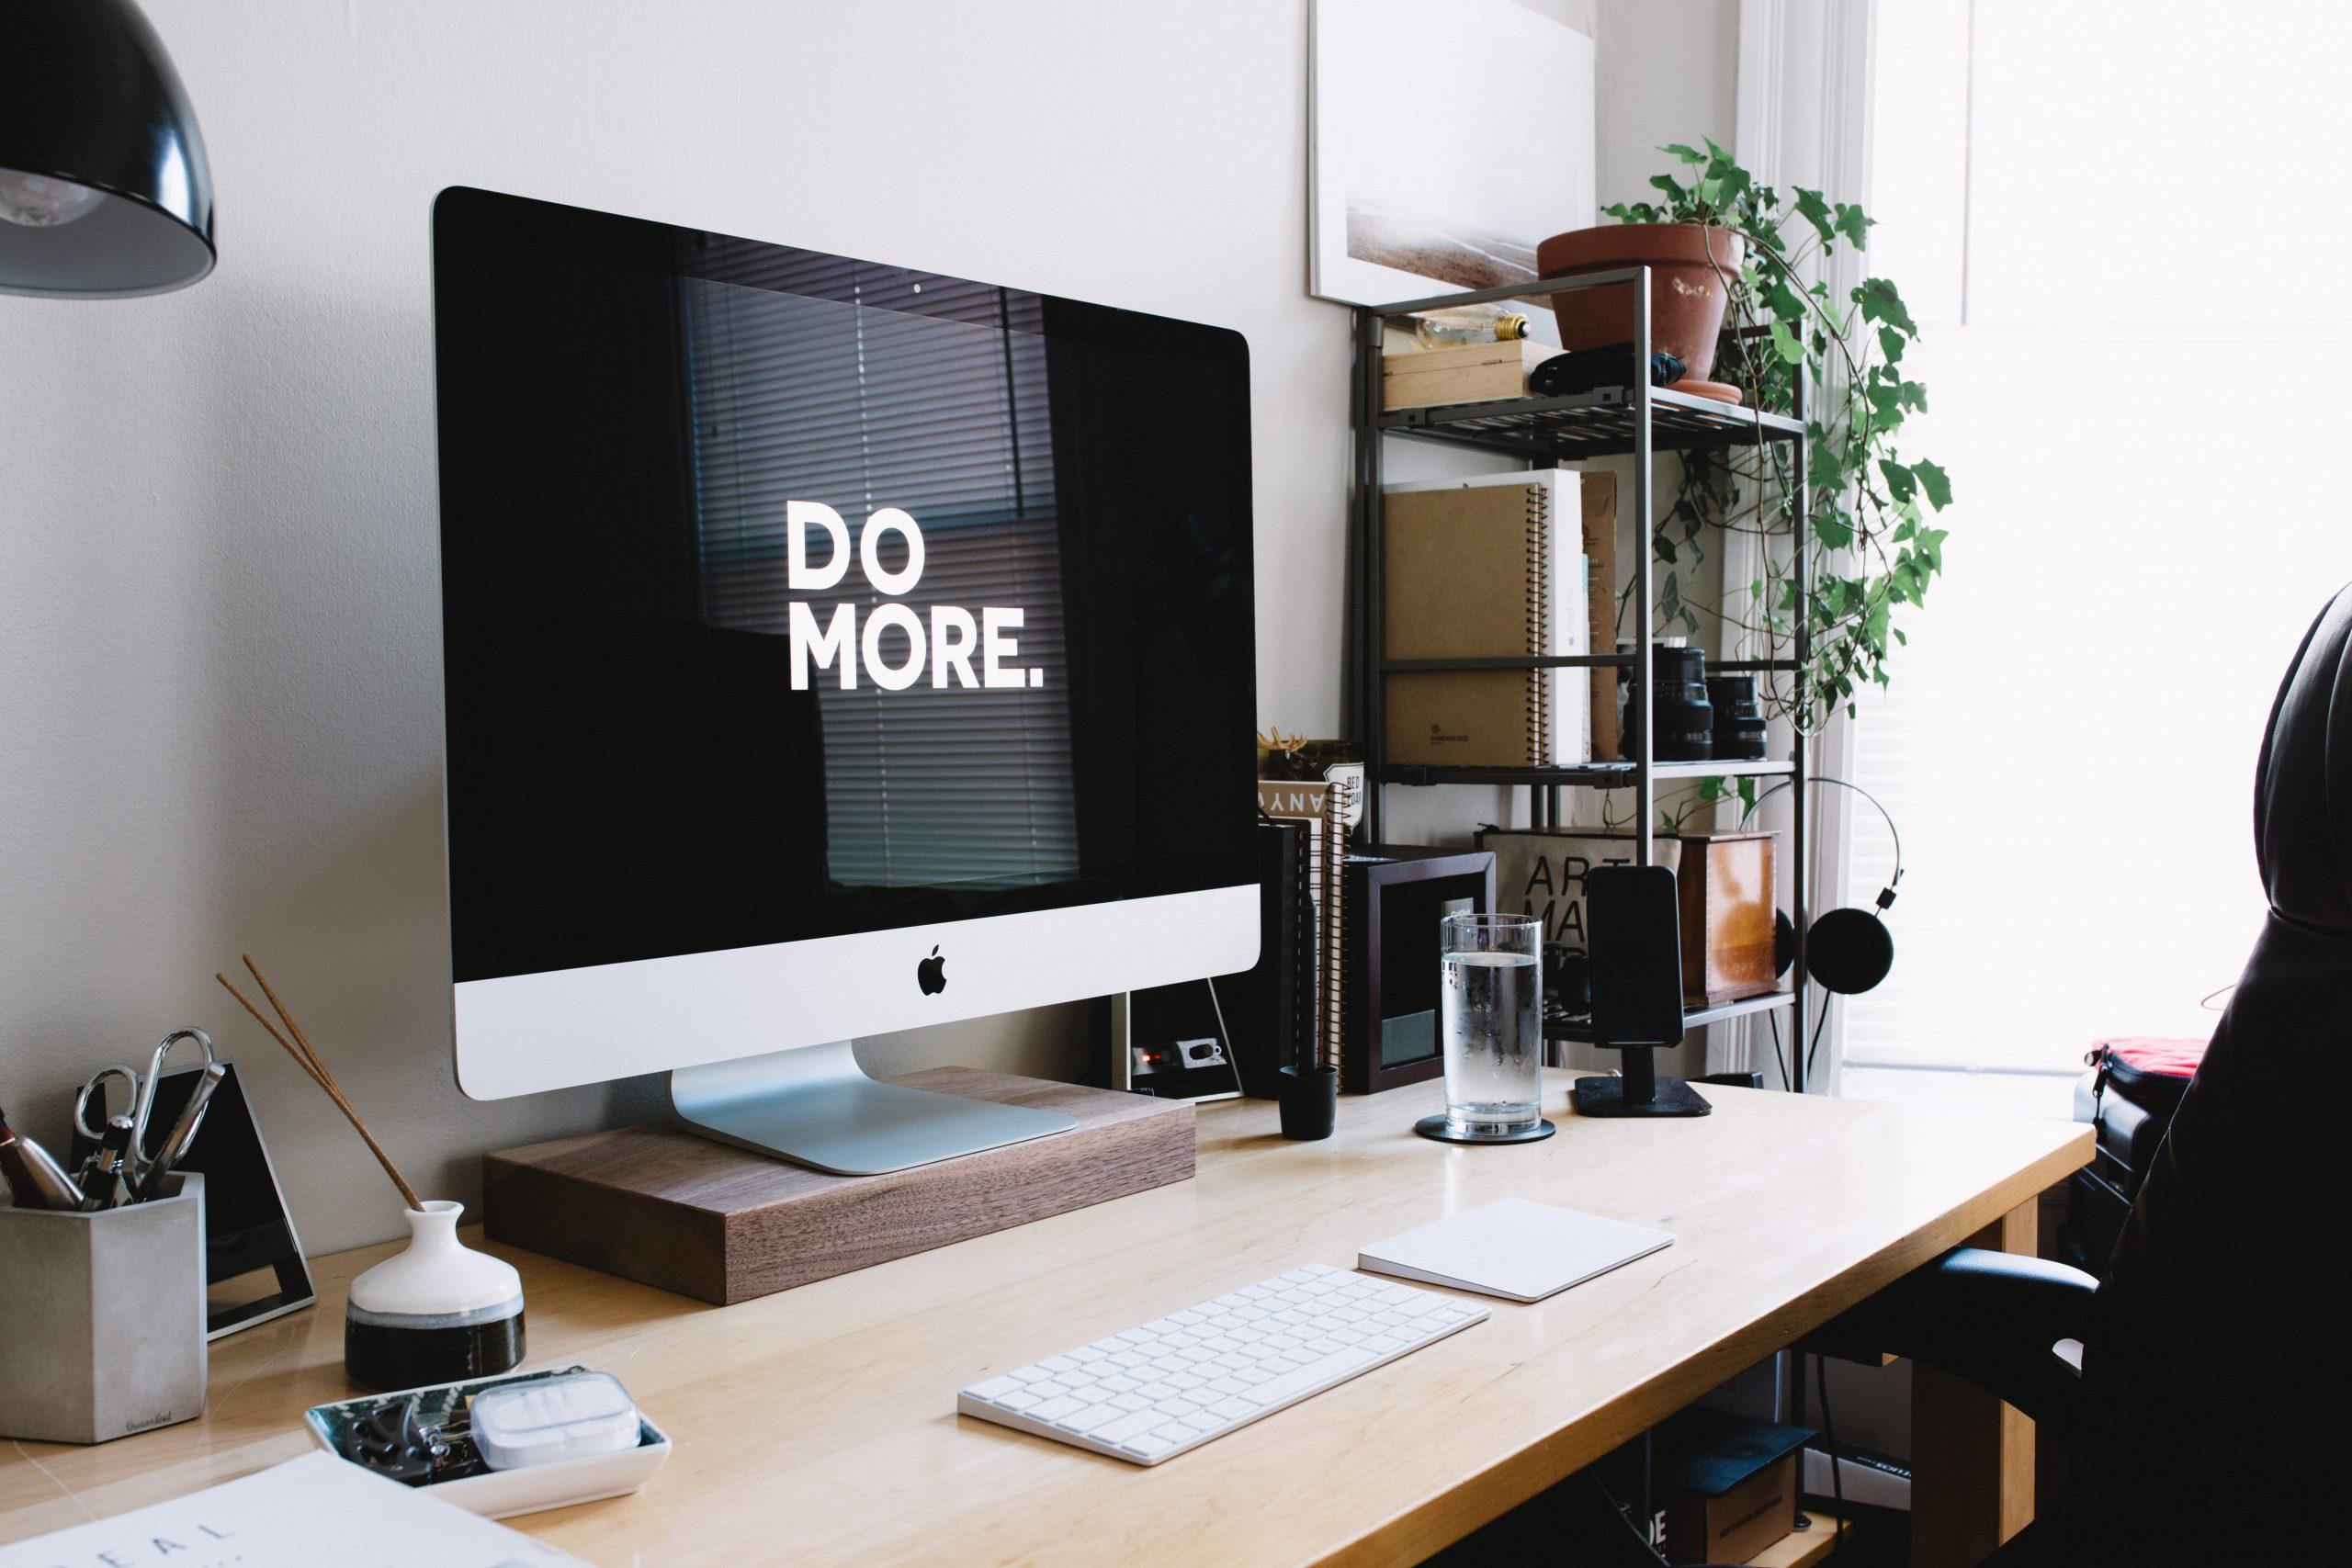 Six productivity tips to help your business thrive remotely